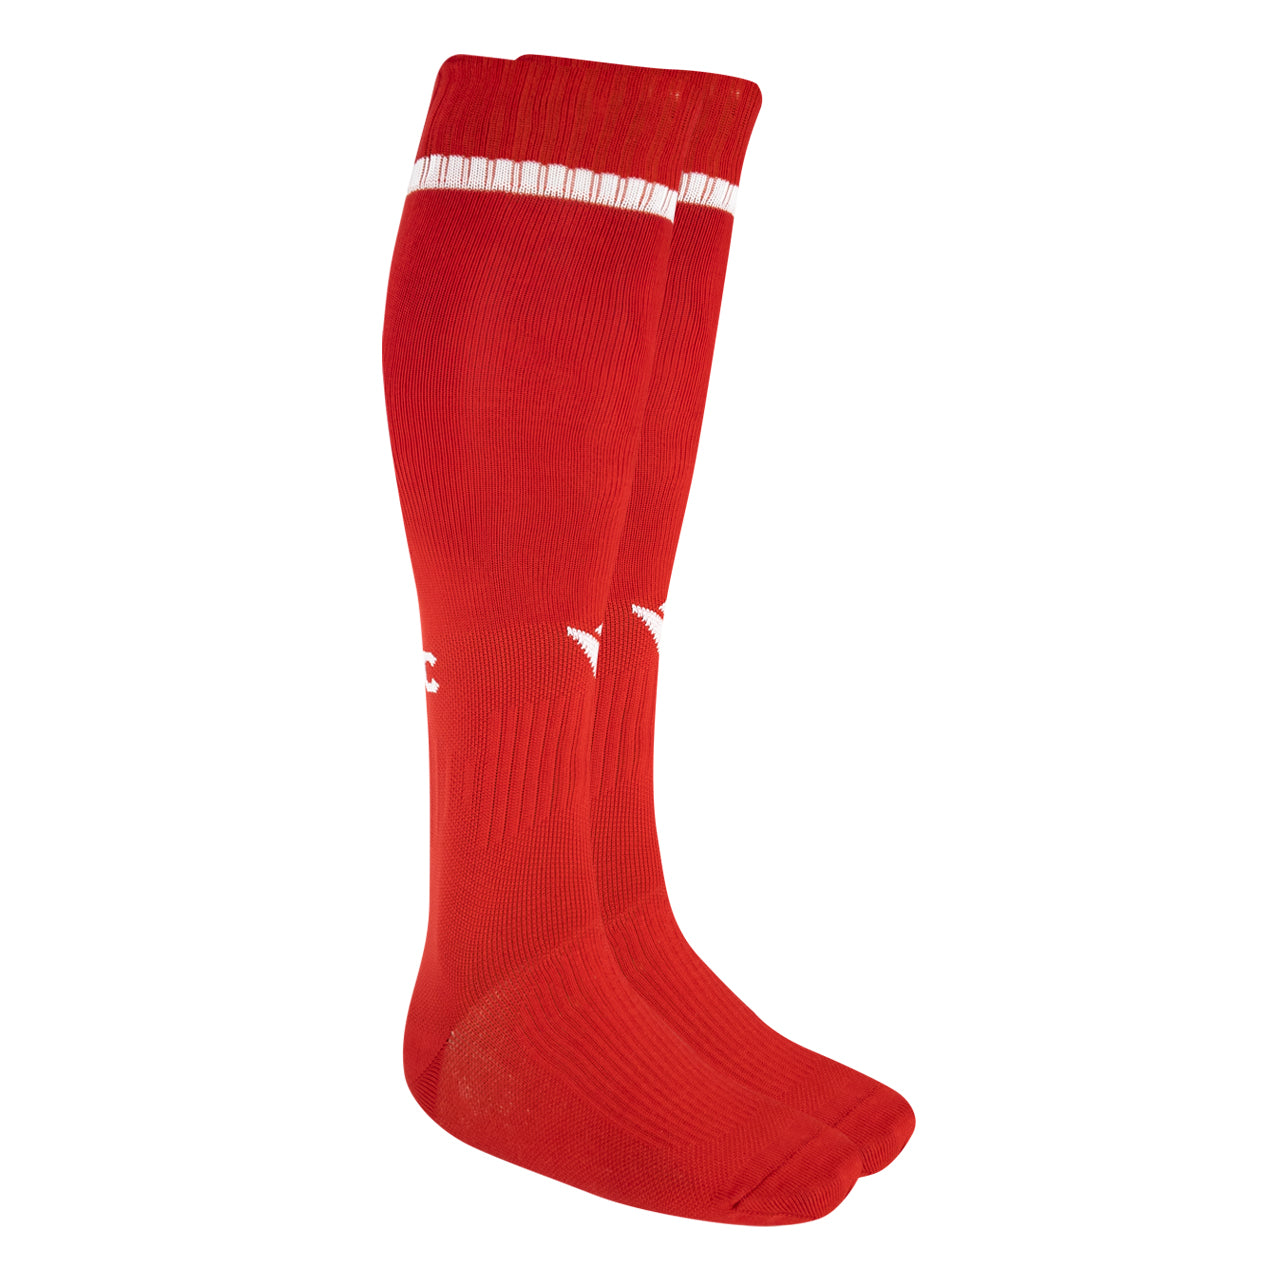 NFFC Mens Home Socks 2019/20